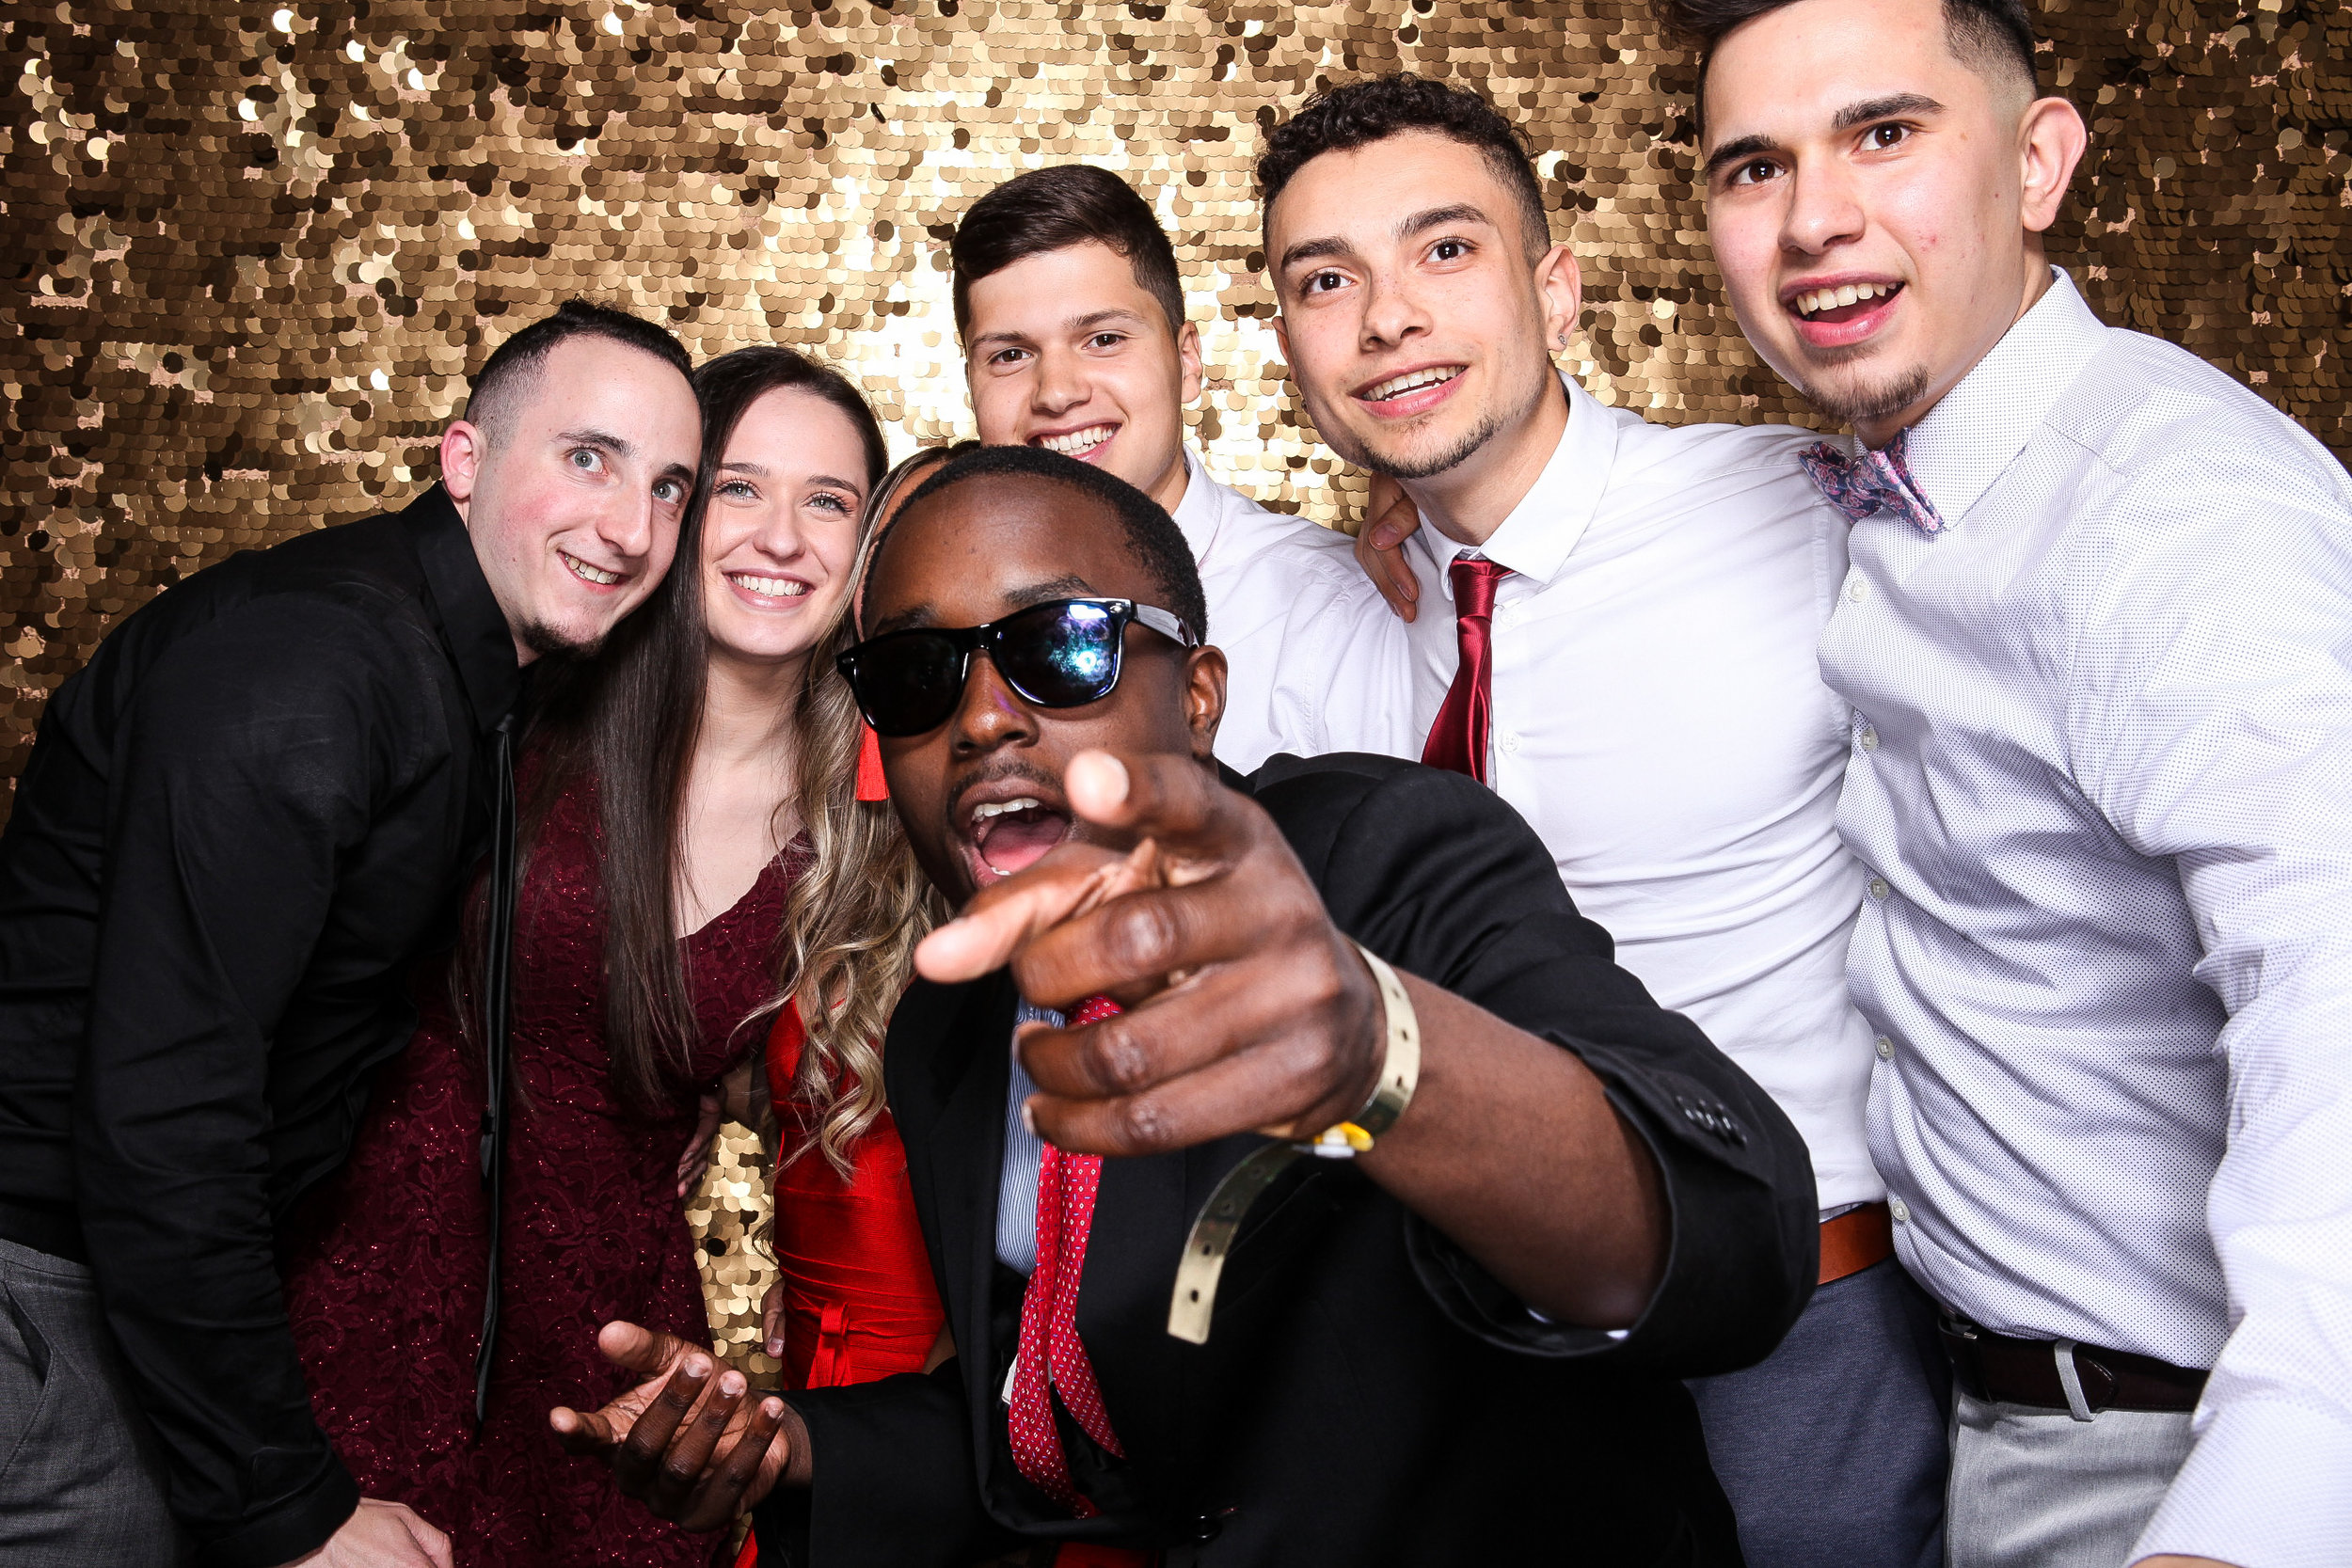 20190503_Adelphi_Senior_Formal-106.jpg